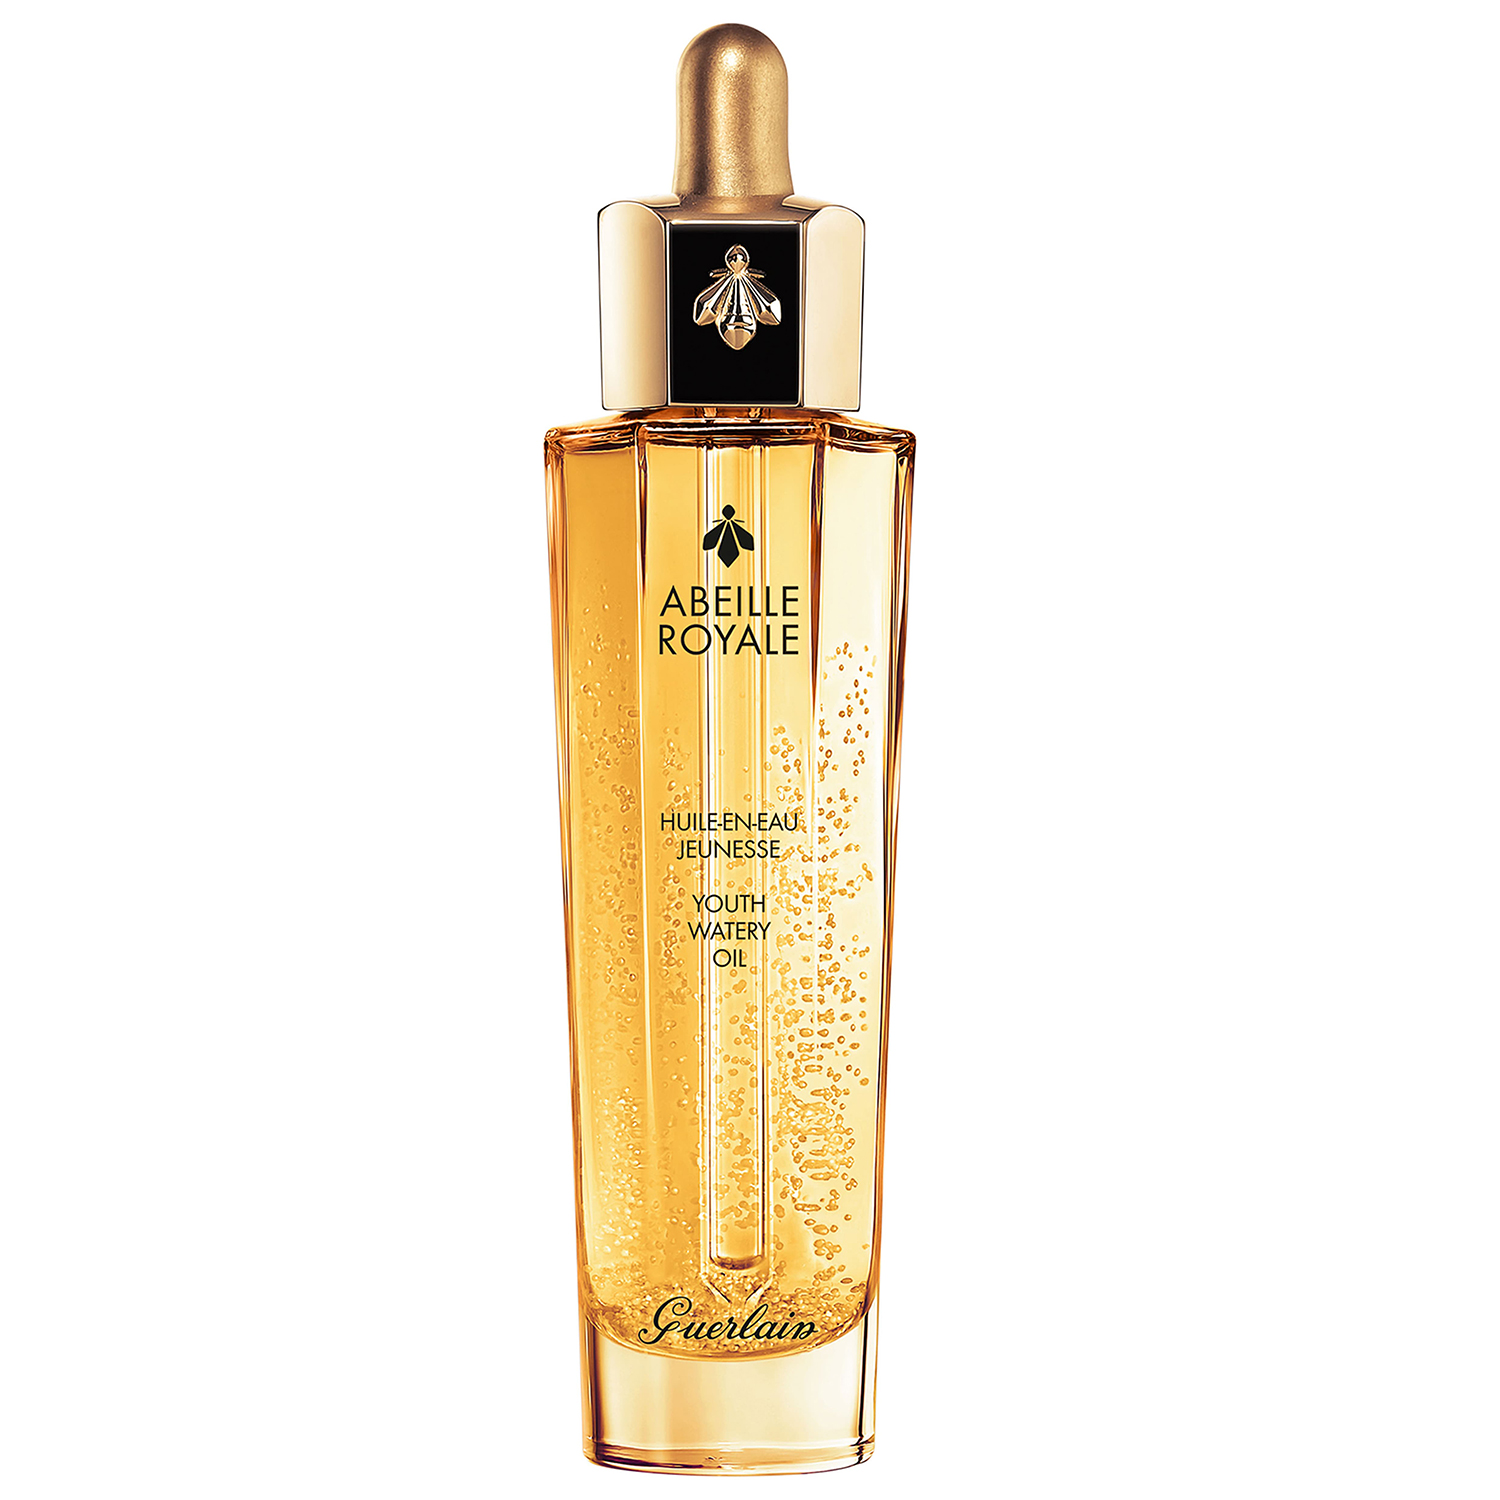 GUERLAIN Abeille Royale Anti-Aging Youth Watery Oil